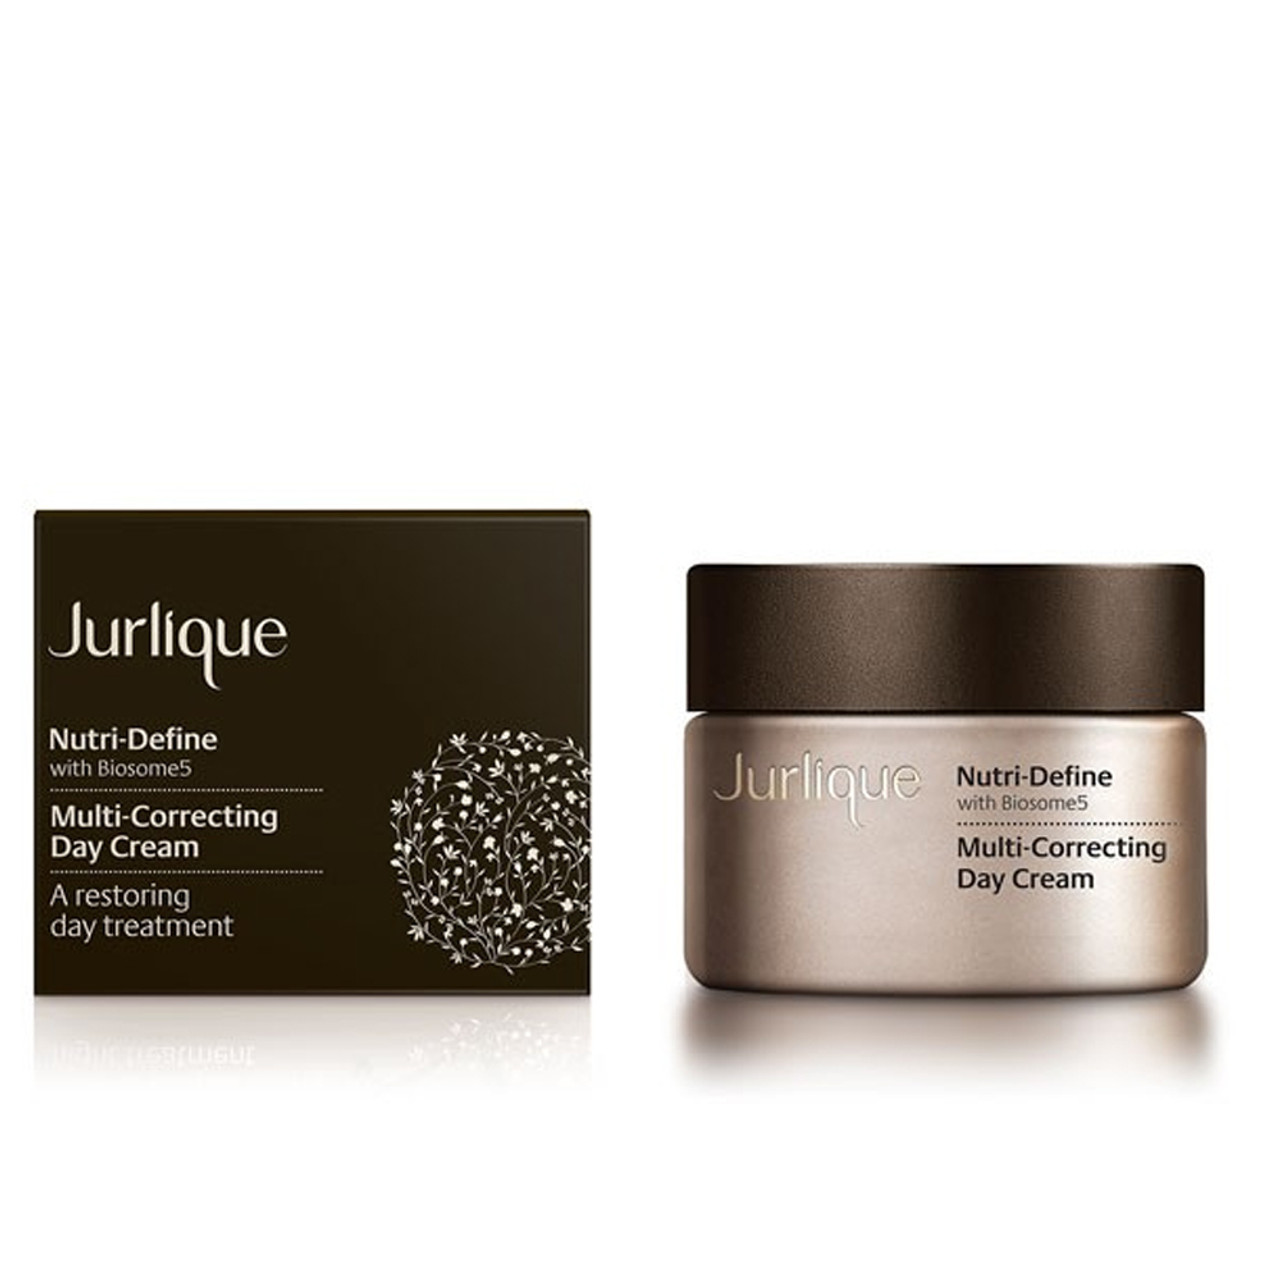 Jurlique Nutri Define Multi Correcting Day Cream (discontinued)